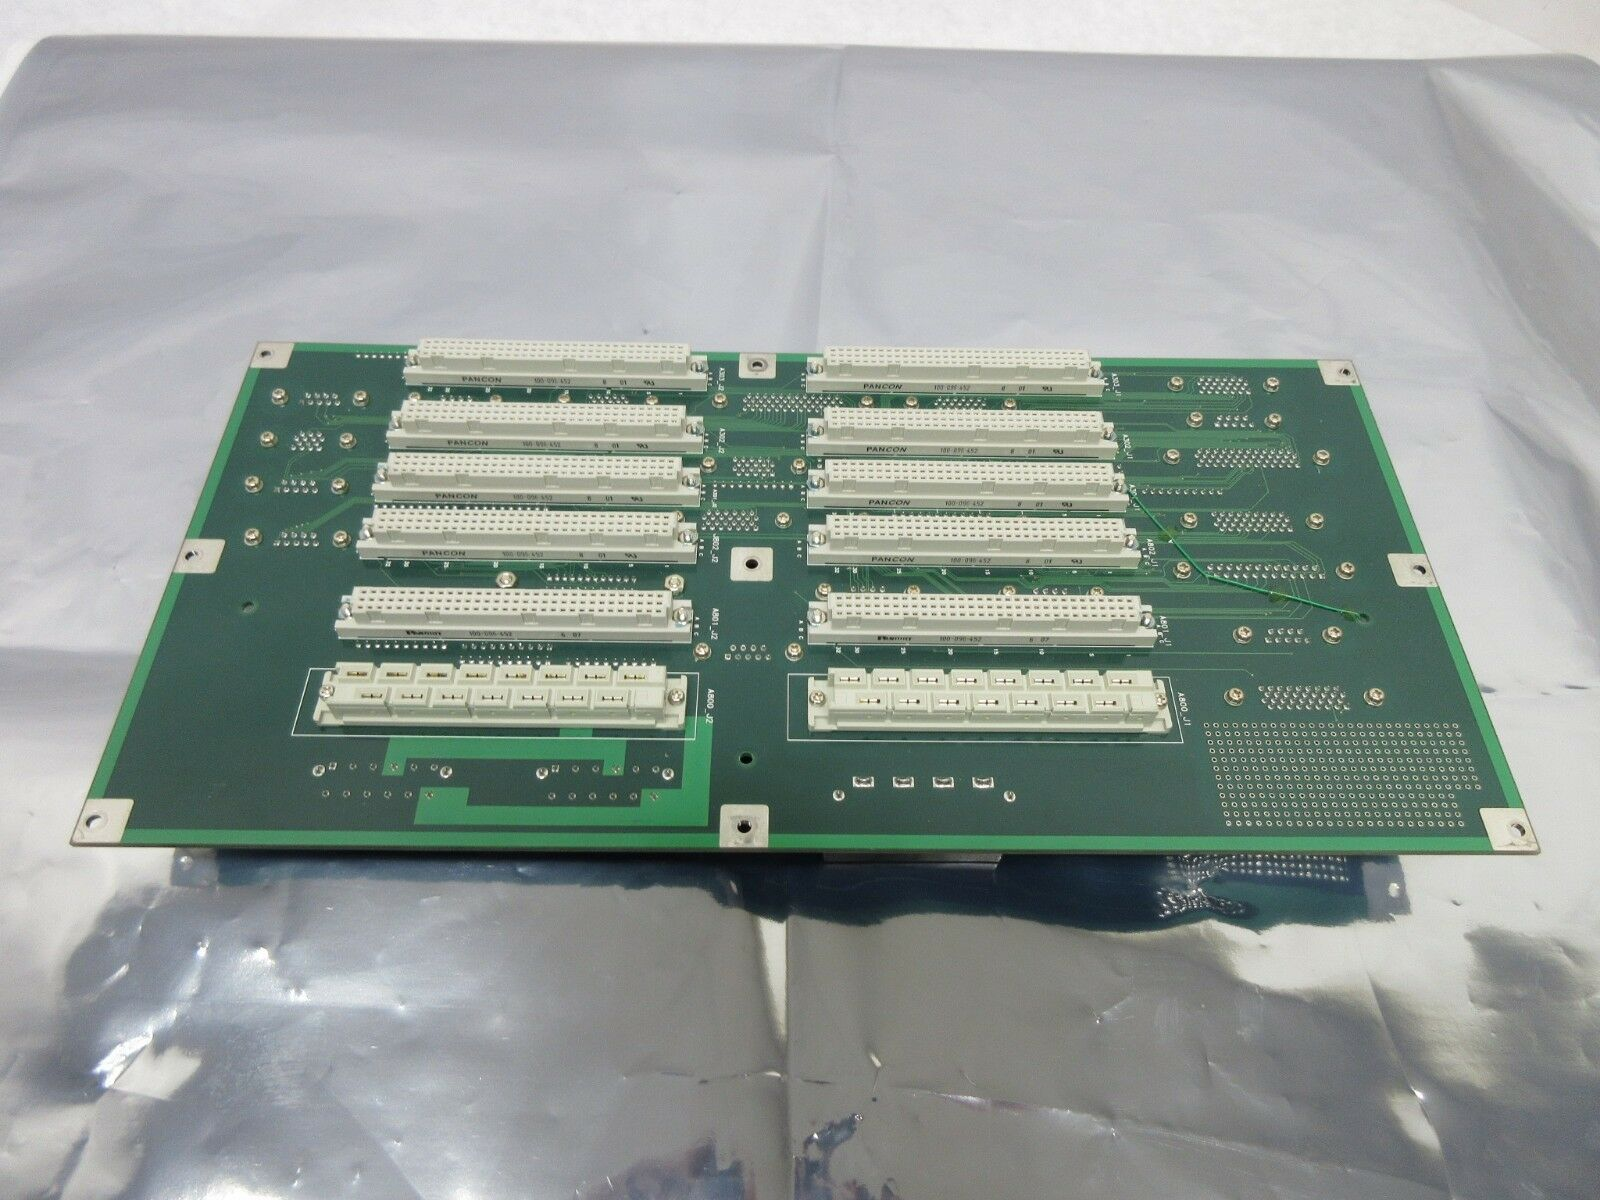 Nikon 4S018-171-2D Backplane Interface Board PCB OPDMTH3 NSR-S204B Used Working